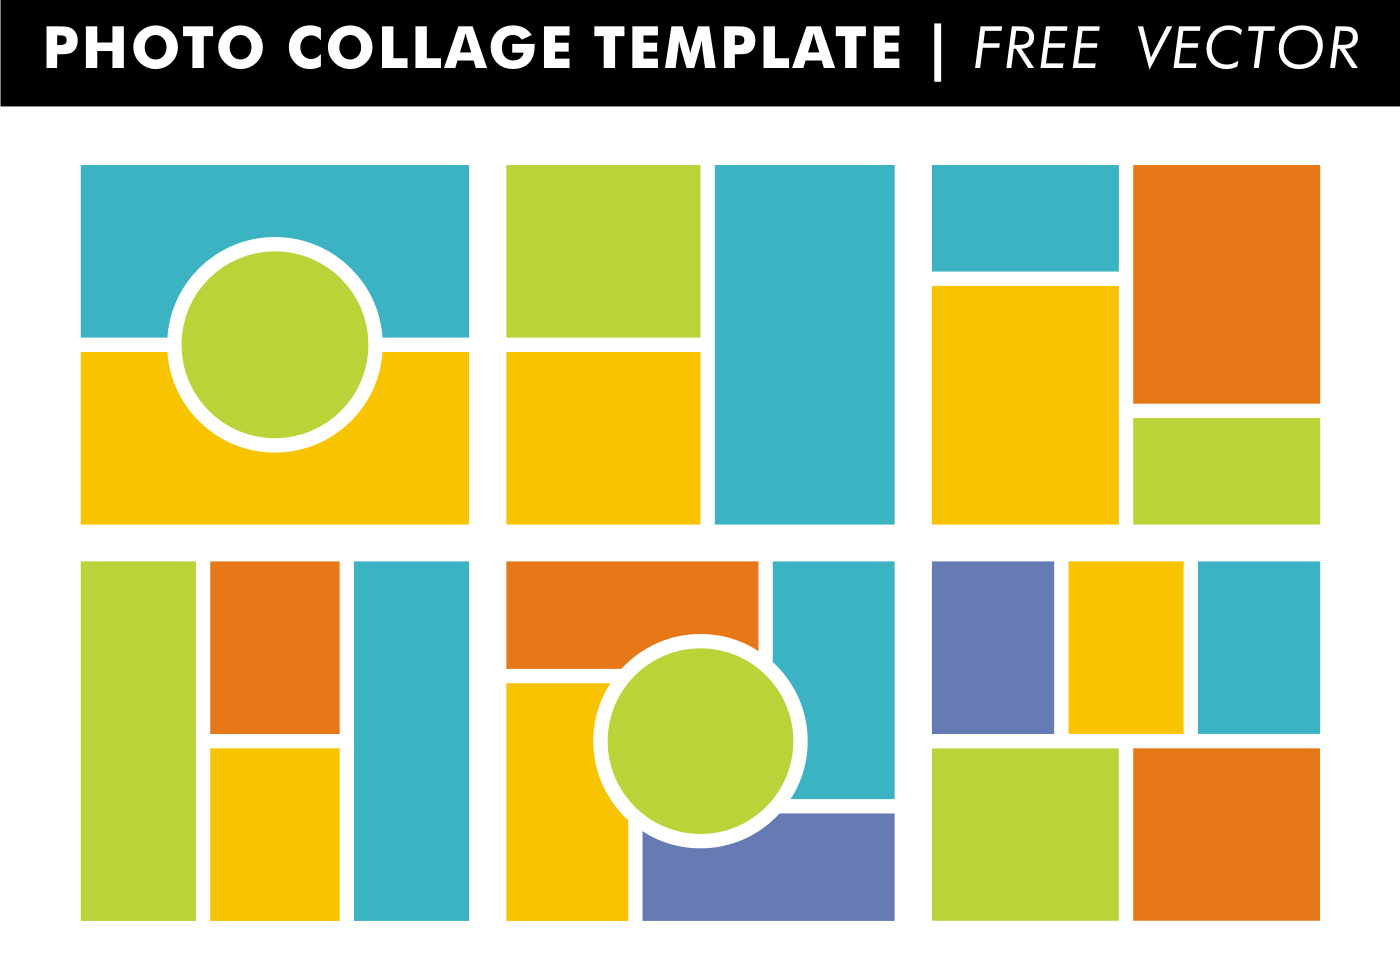 Photo collage templates vector download free vector art for Free online photo collage templates